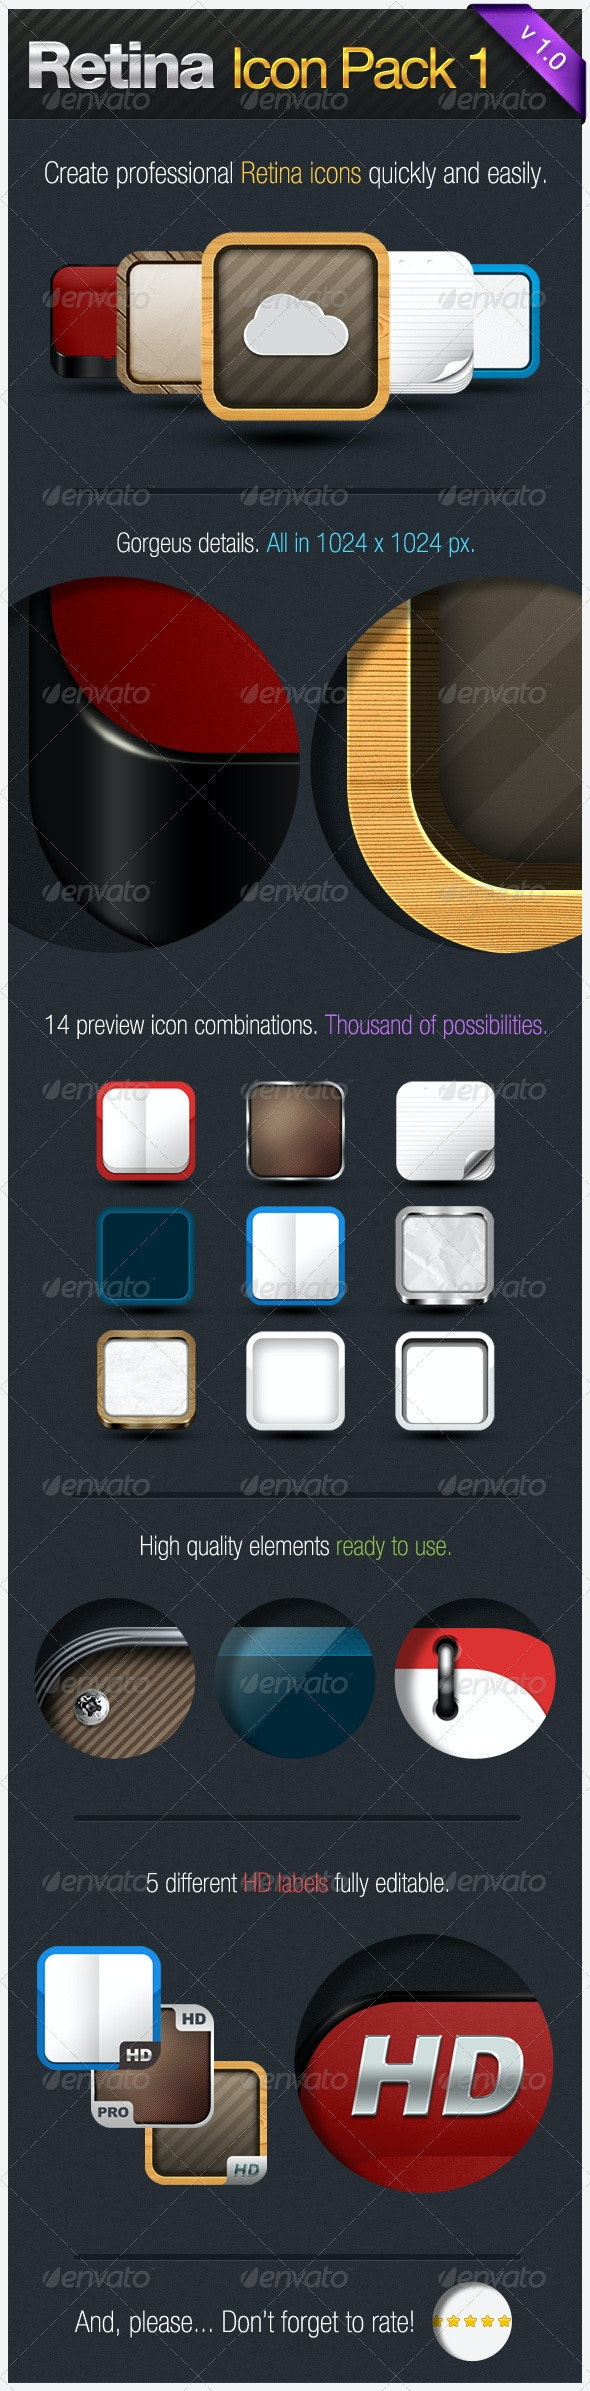 Retina Icon Pack I - Software Icons